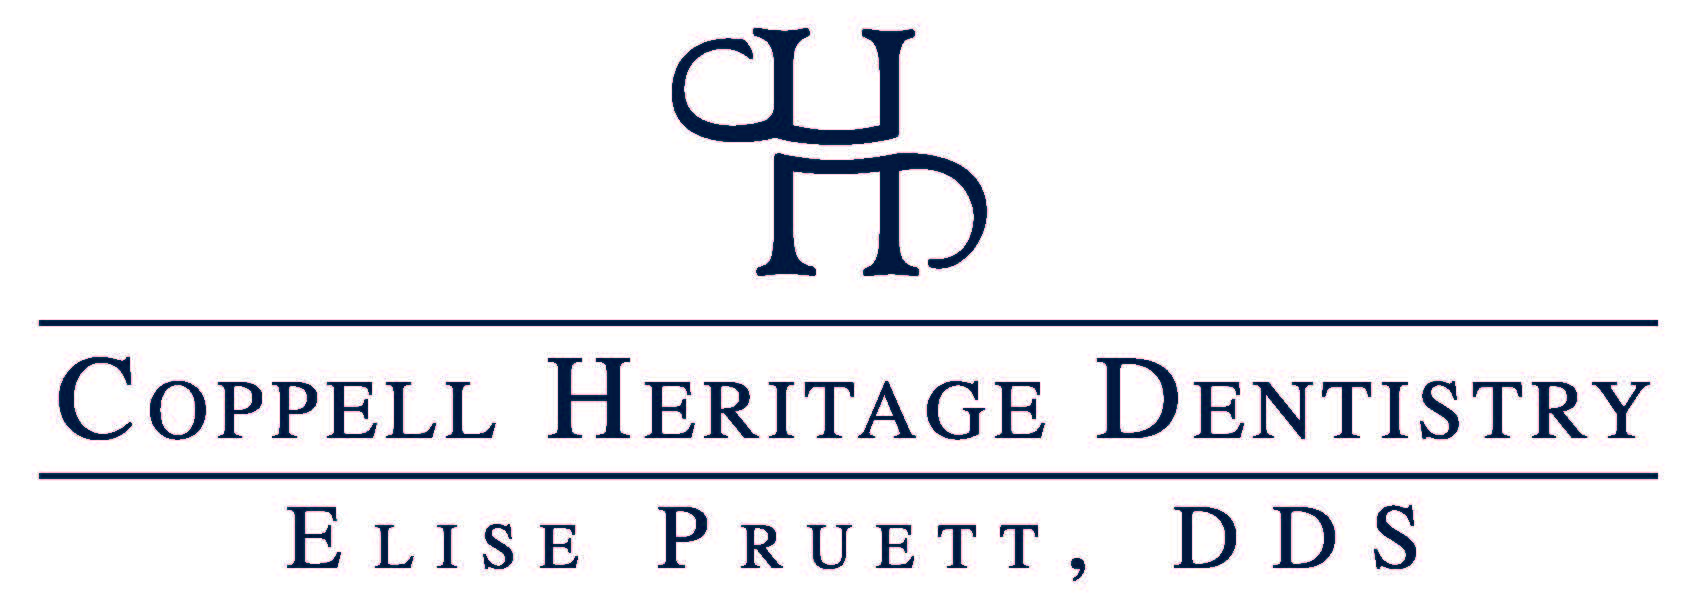 Coppell Heritage Dentistry Logo